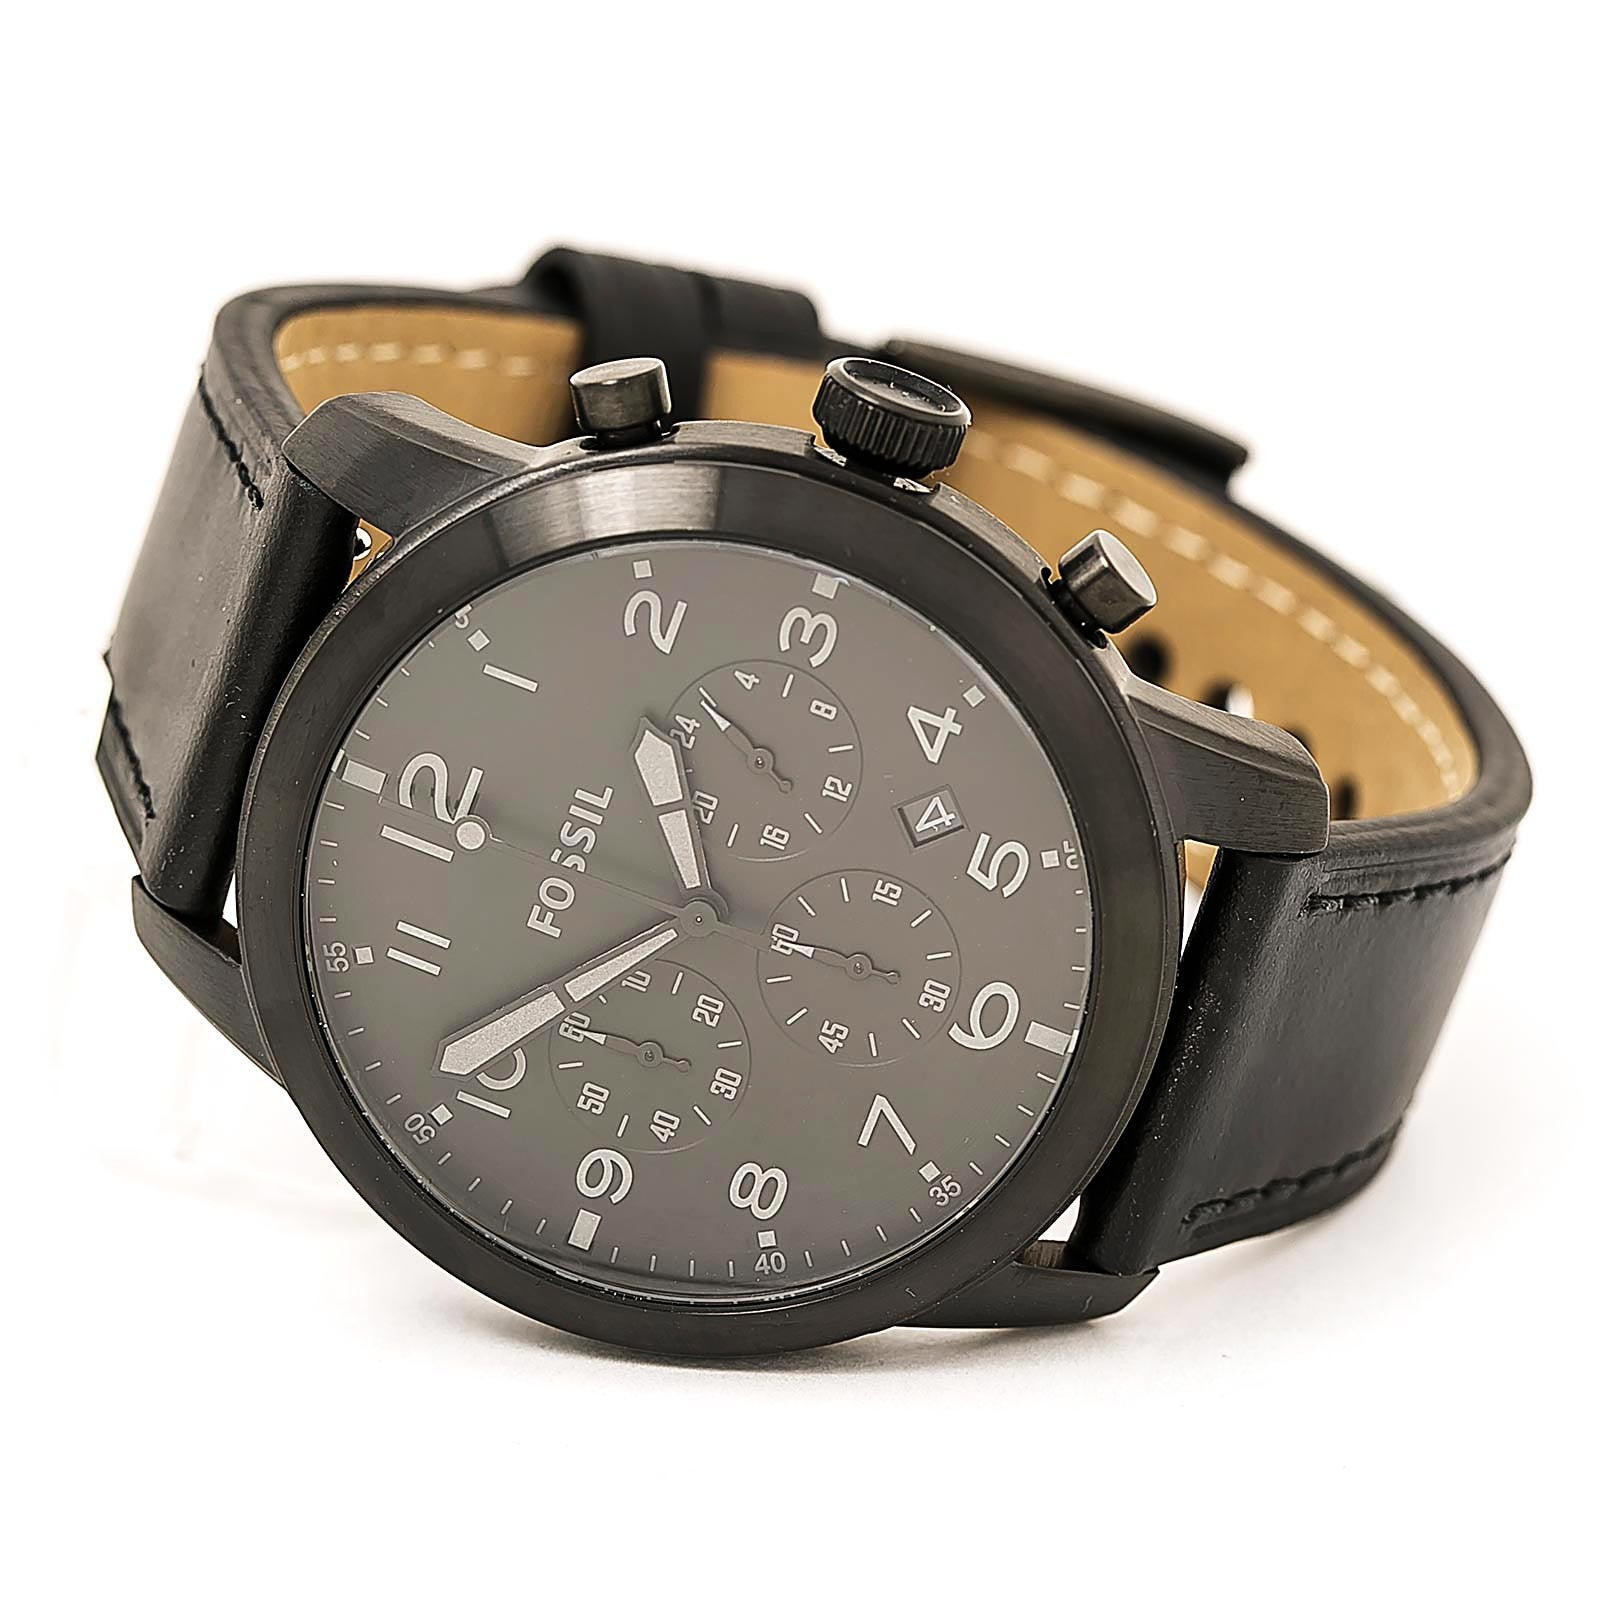 Fossil FS5157 Men's Pilot 54 Chronograph Black Dial Black Leather Strap Watch